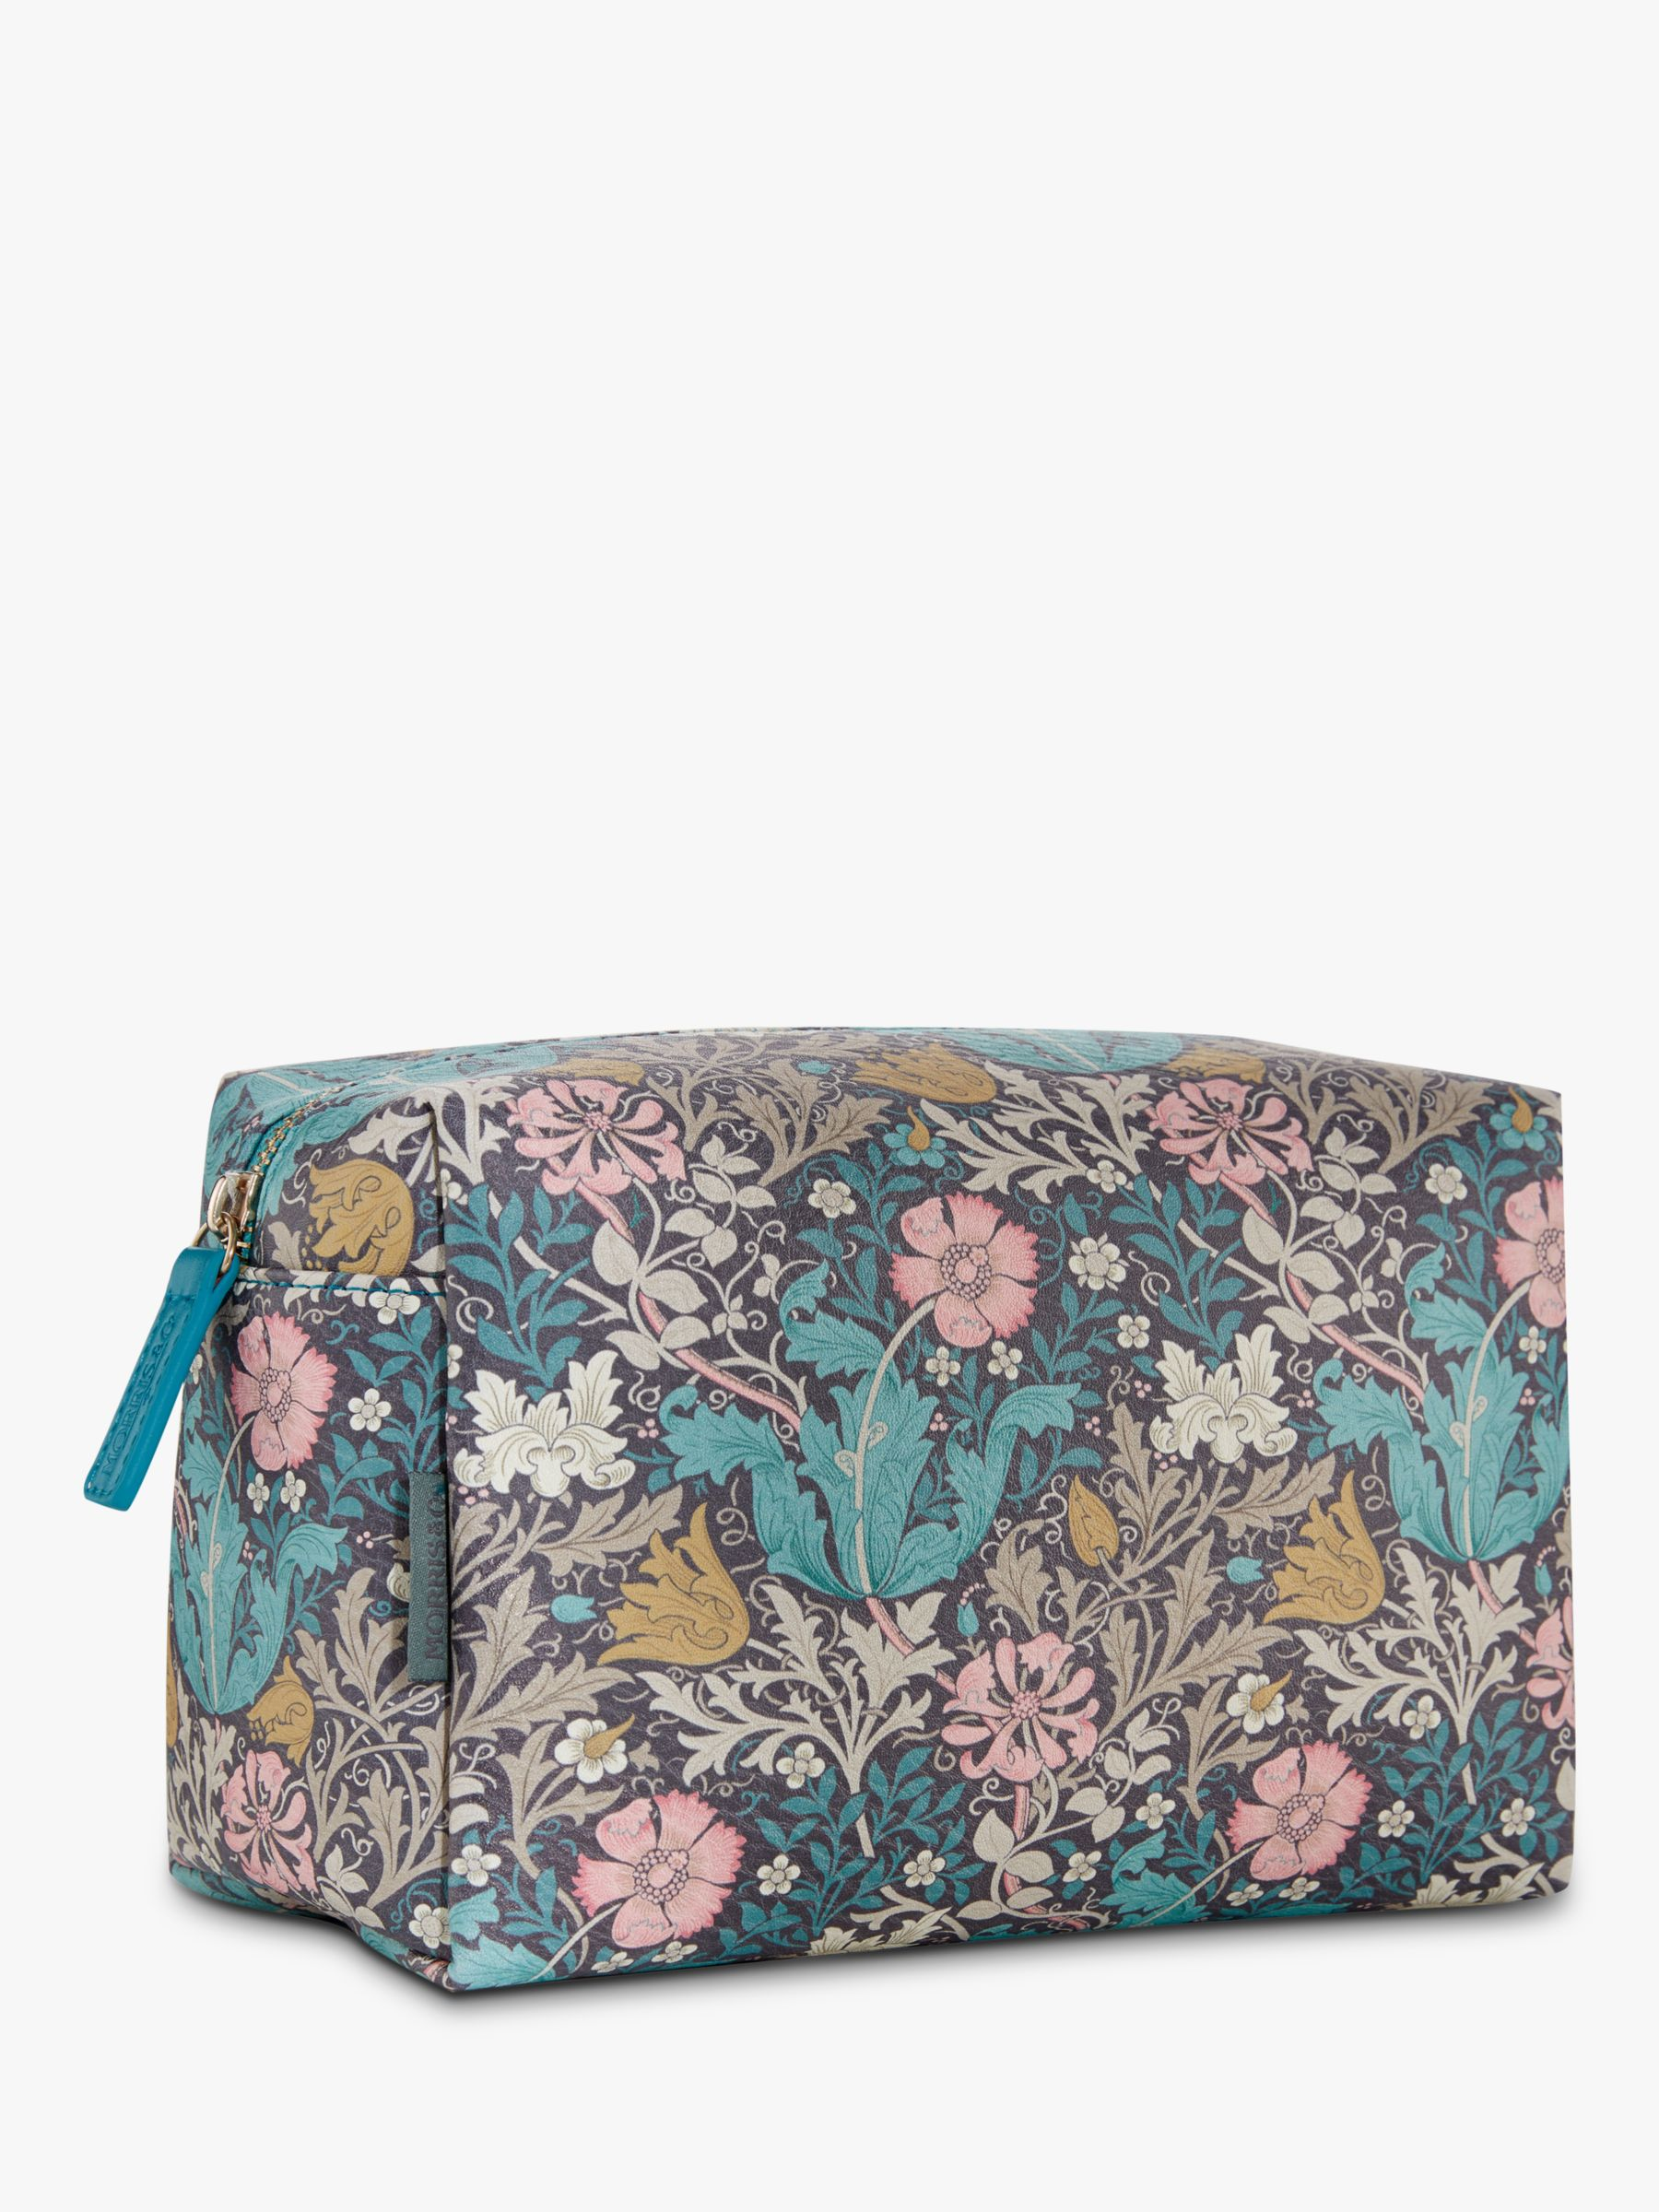 Buy Morris & Co. Compton Large Wash Bag Online at johnlewis.com